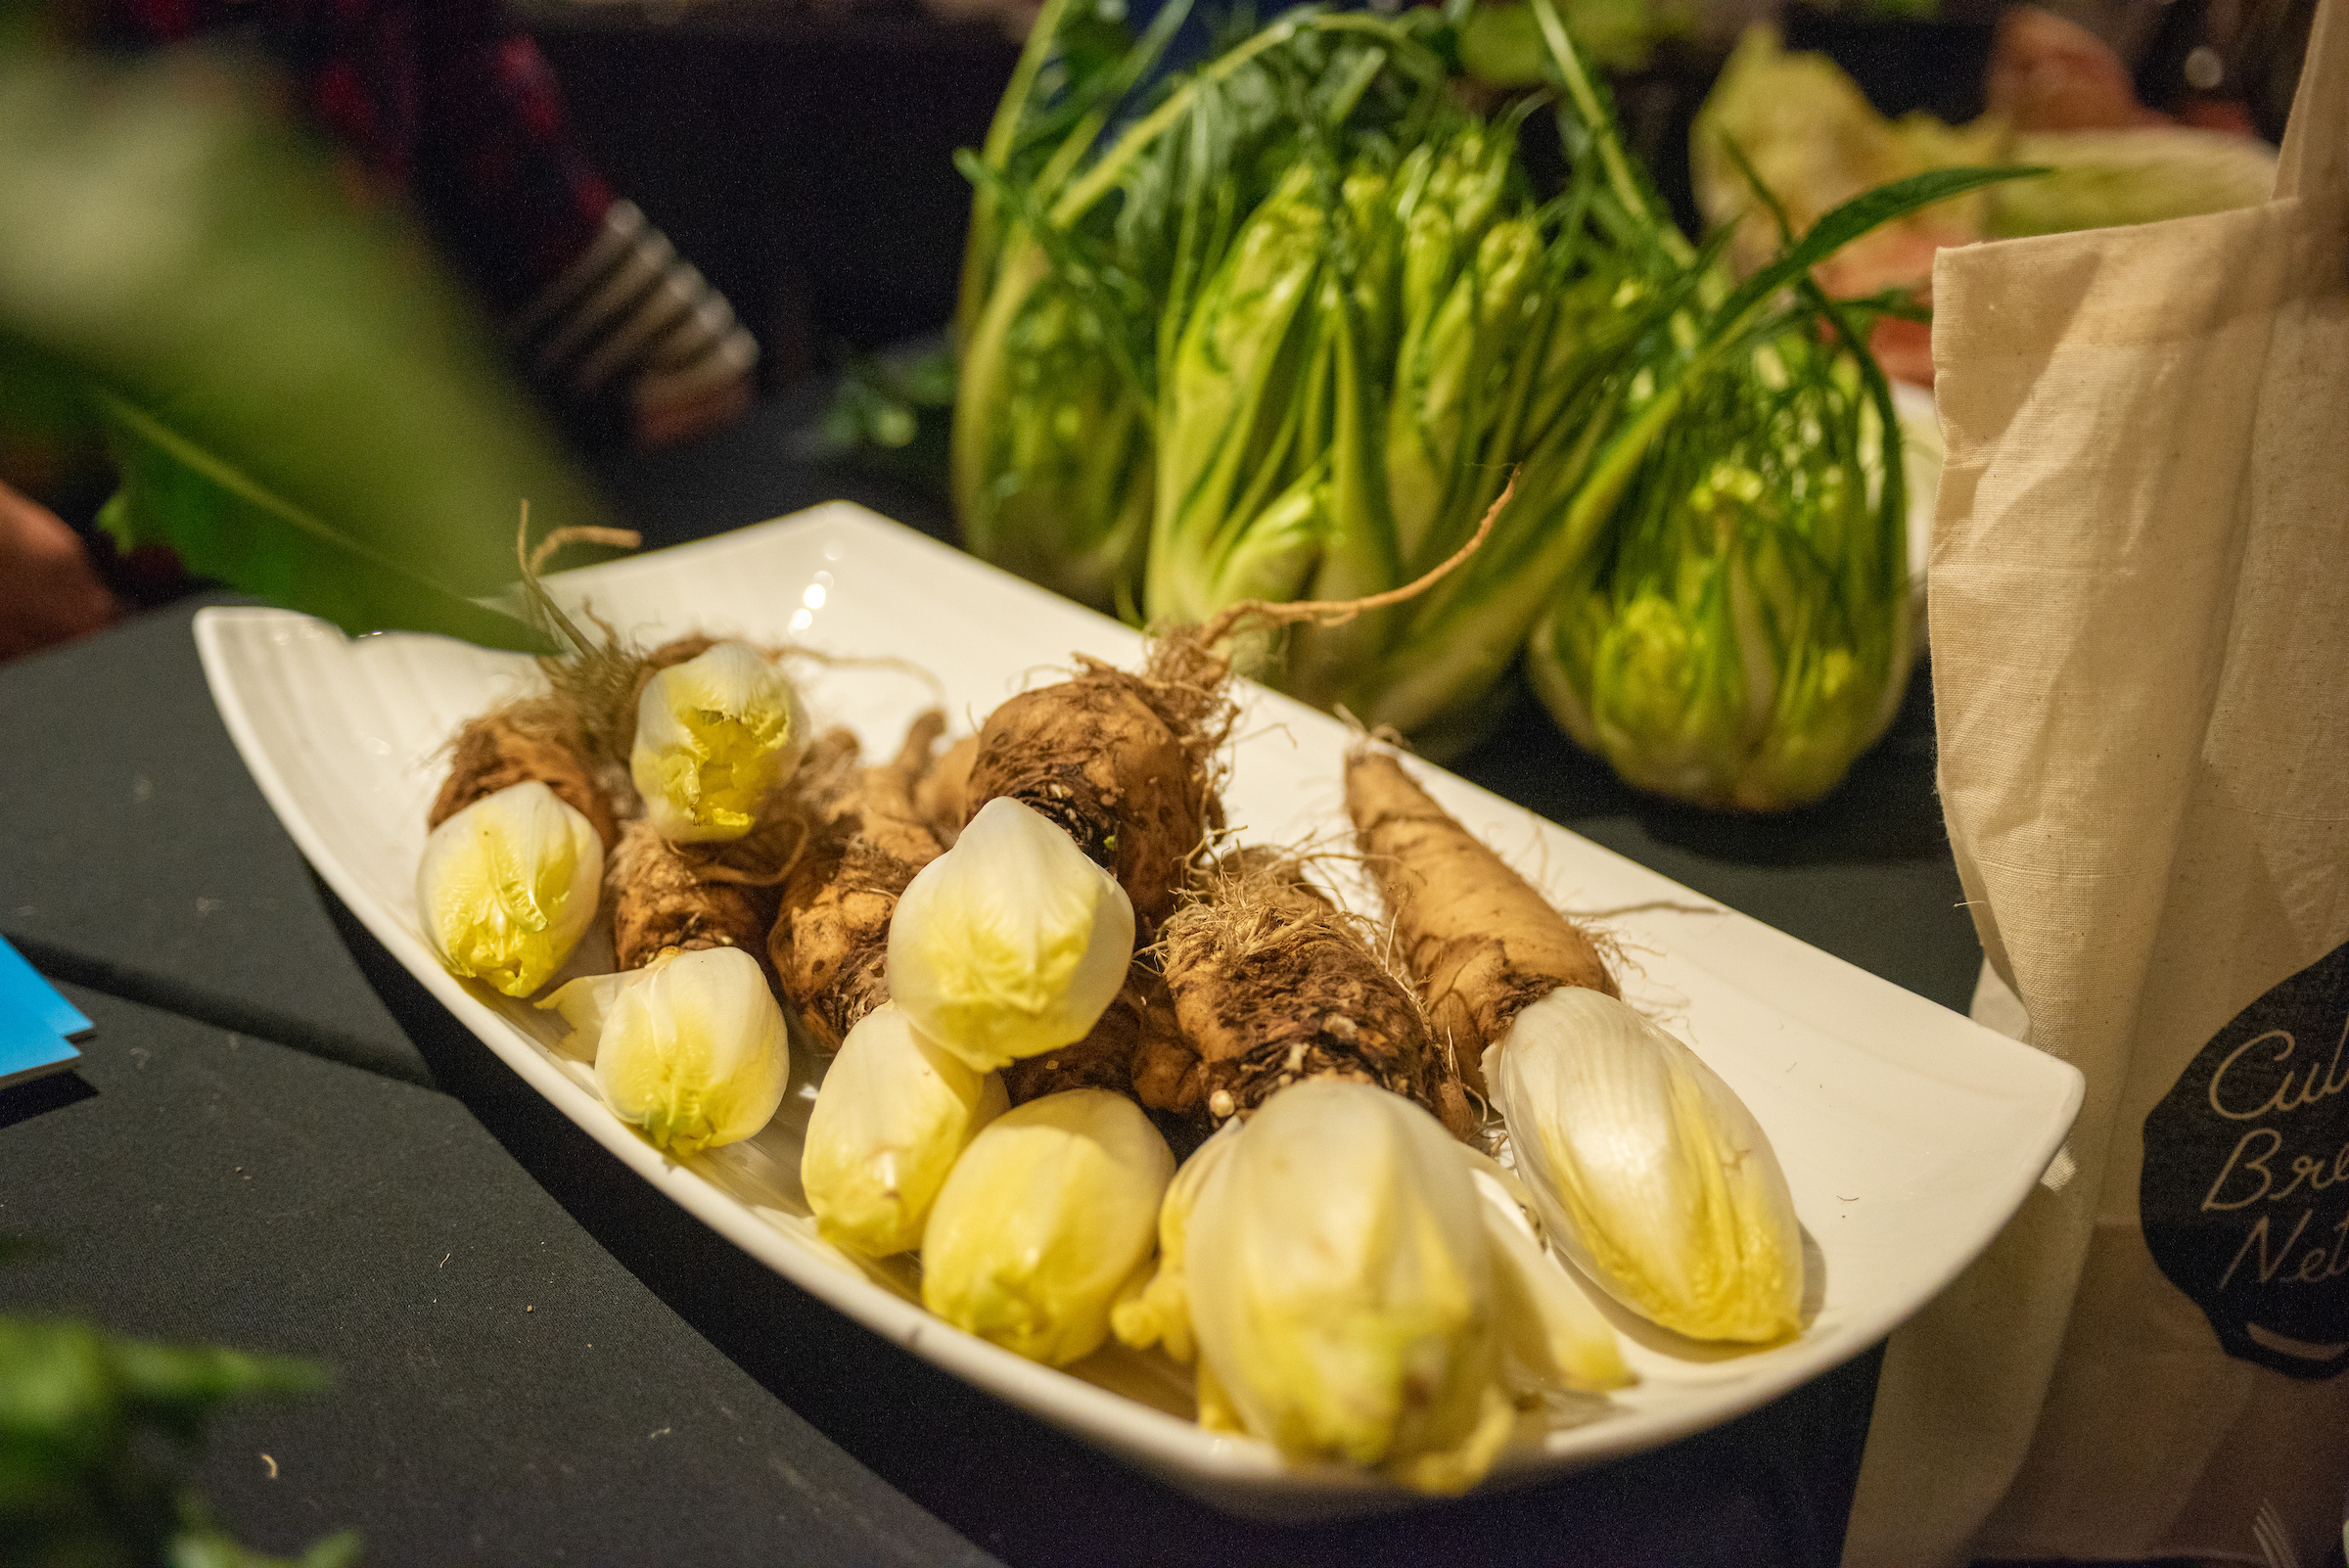 A rare glimpse of Belgian endive from Uprising Seeds. Photo by Shawn Linehan.